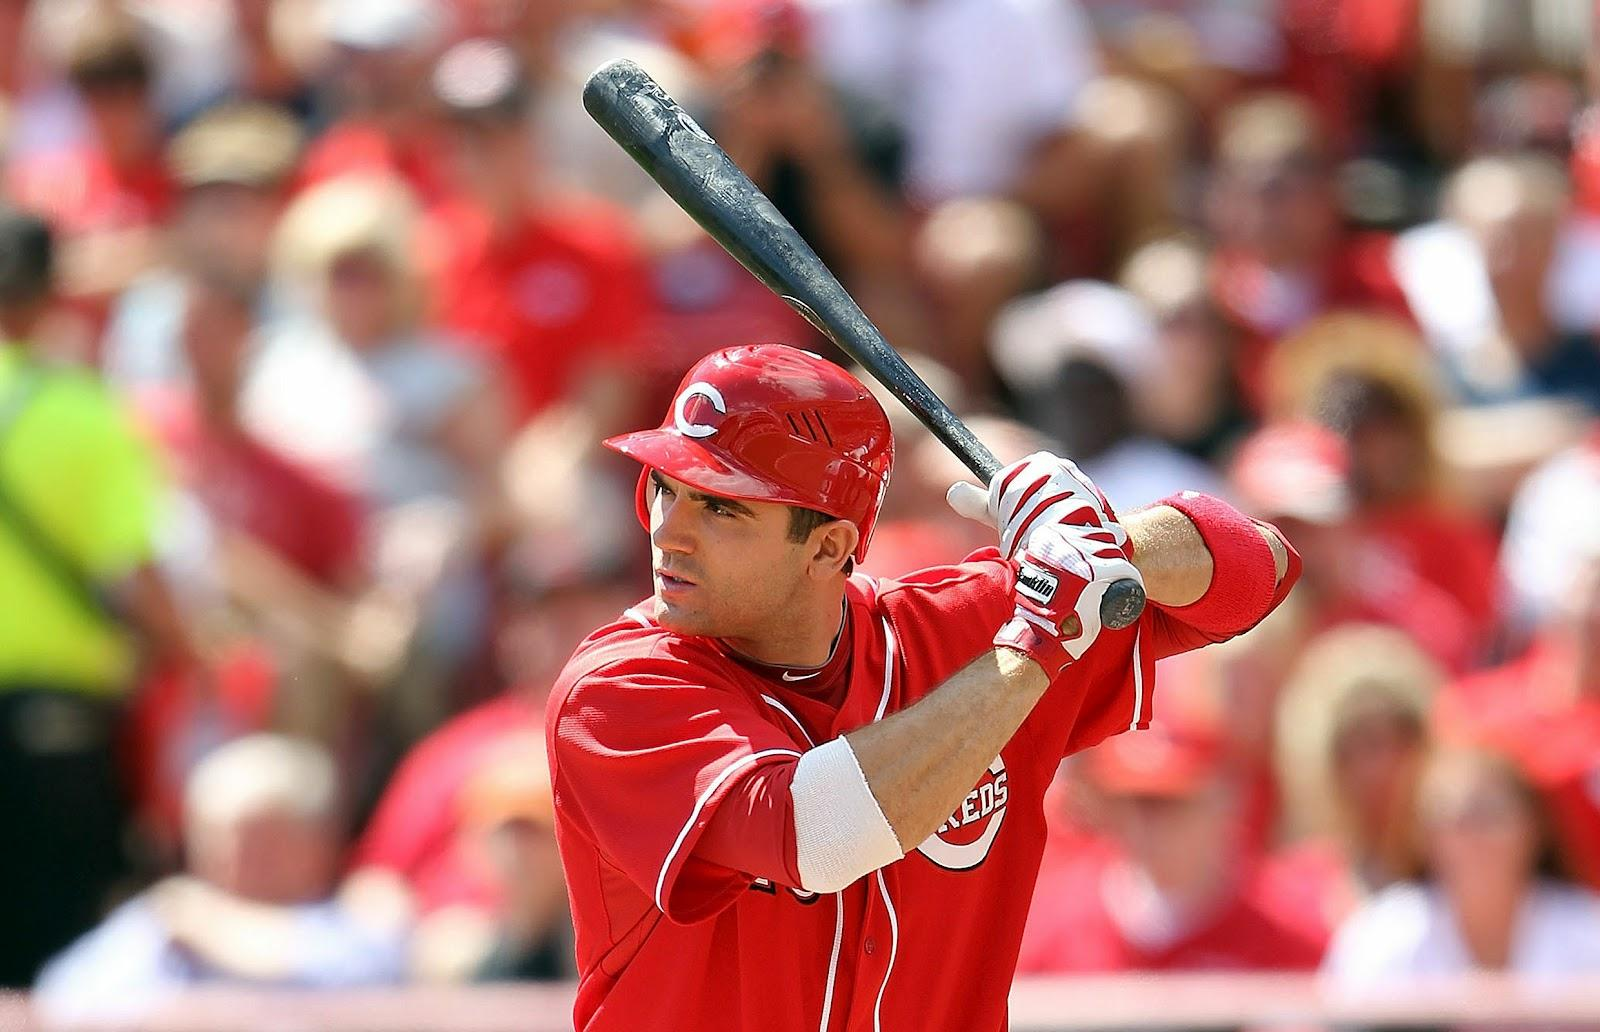 High Res Joey Votto Wallpapers Sarah Michelle September 22, 2015